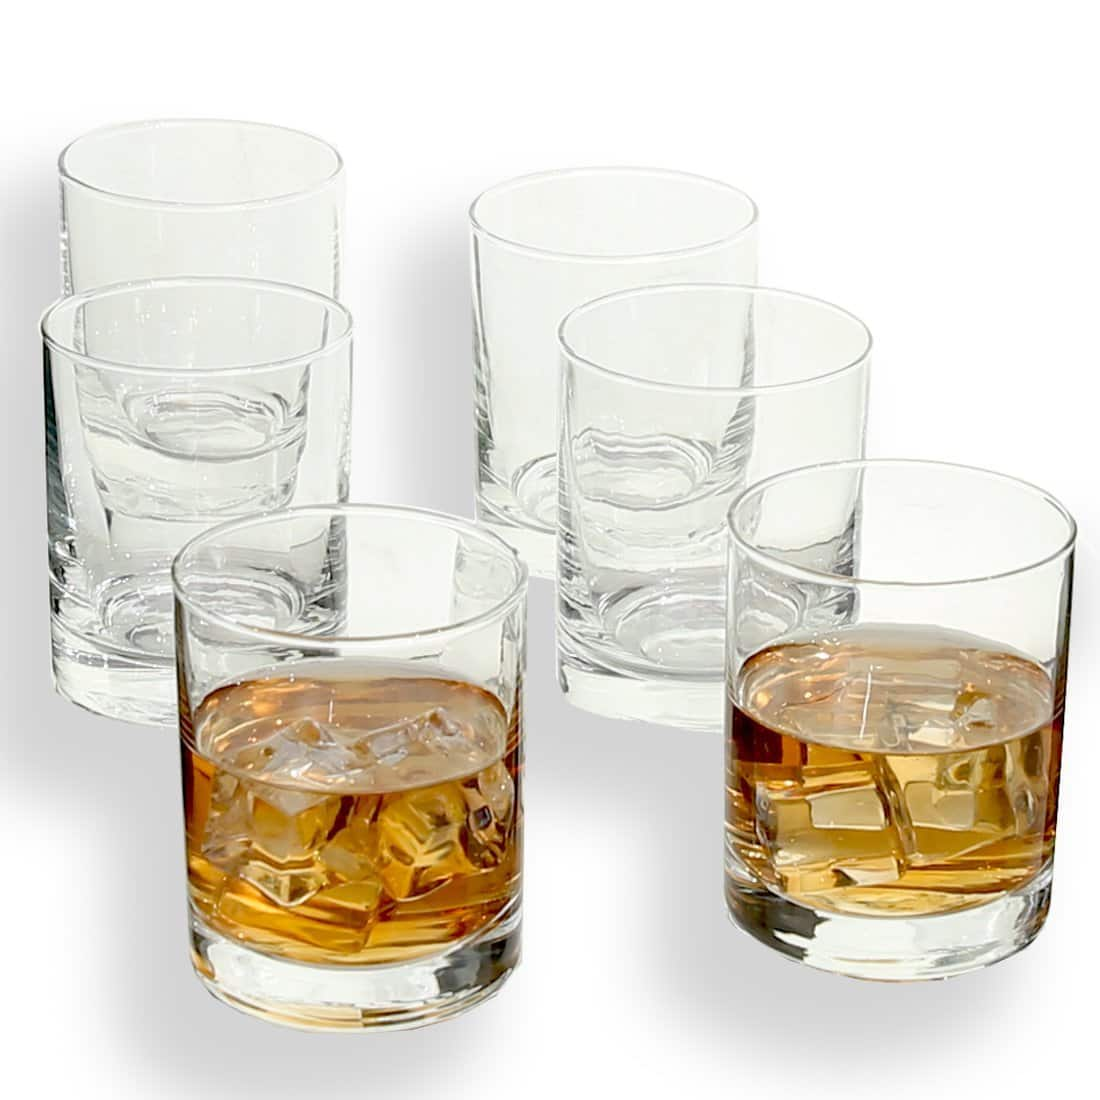 Set of 6 11oz Crystal Old Fashioned / Whiskey glasses - $9.41 AC - F/S with Prime